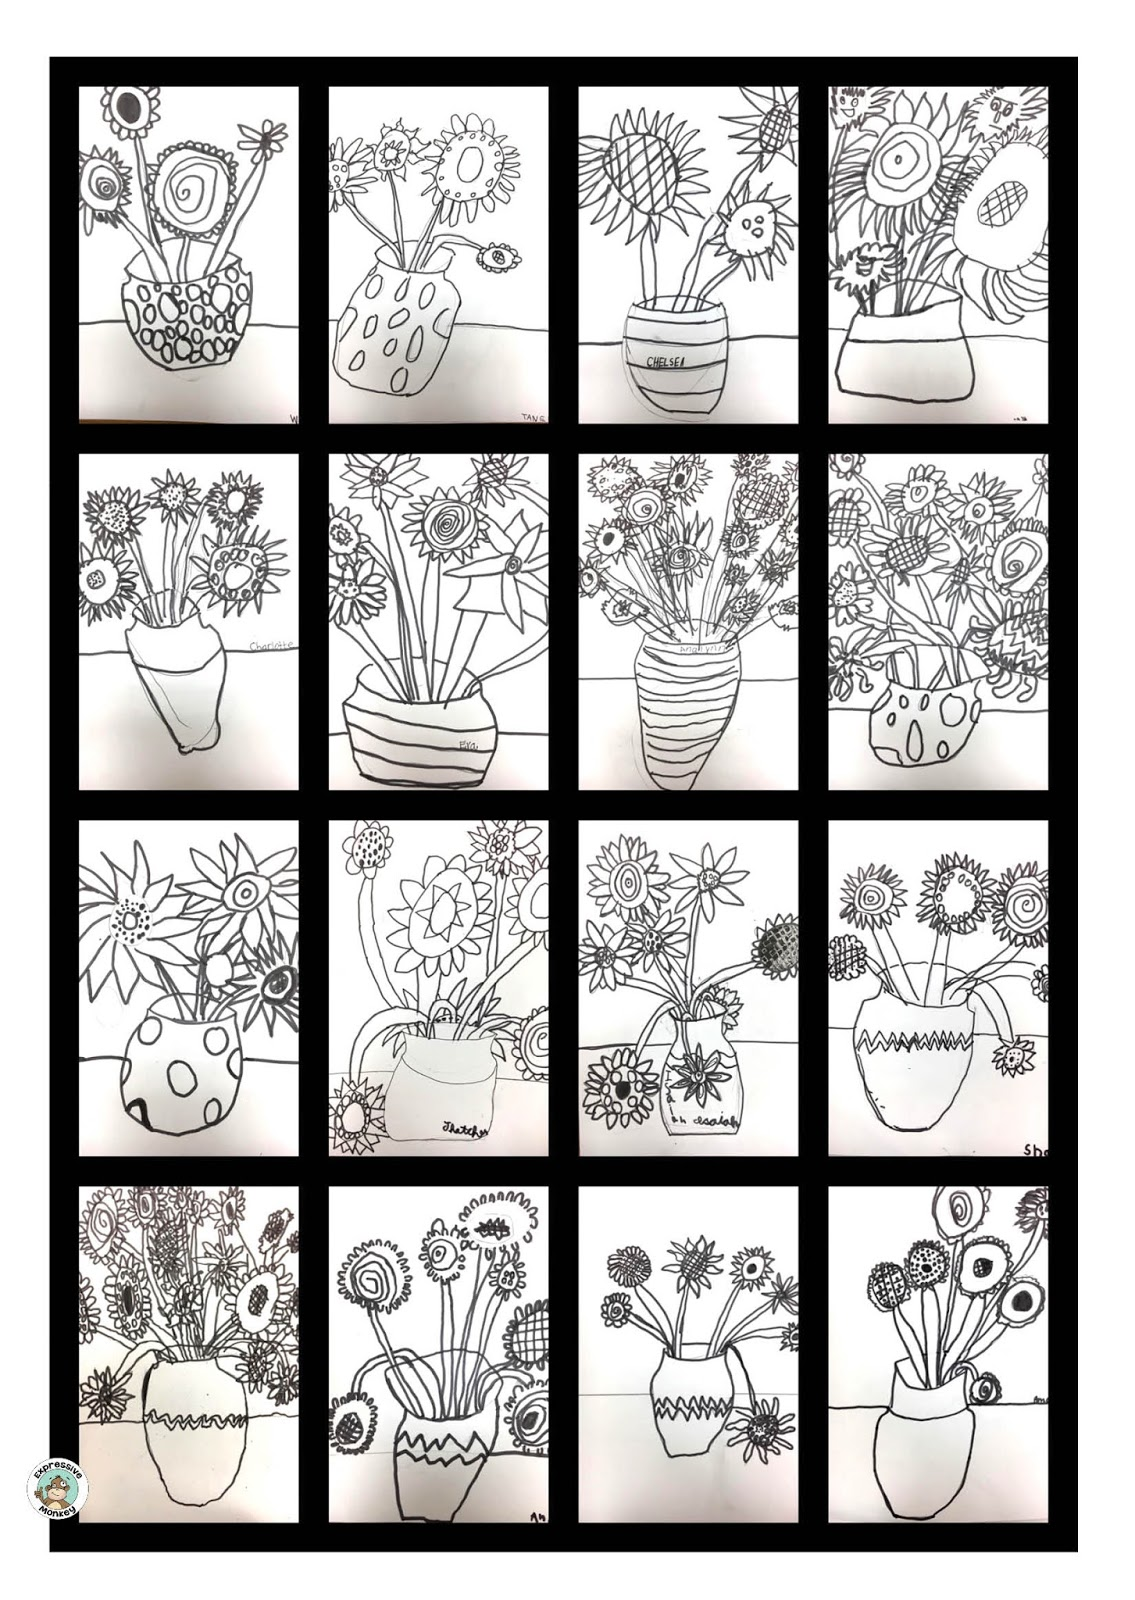 I Have 2 Versions Of The Lesson Just Presentation And Drawing OR With Integrated Art Critique Activities You Can Find Both In My TpT